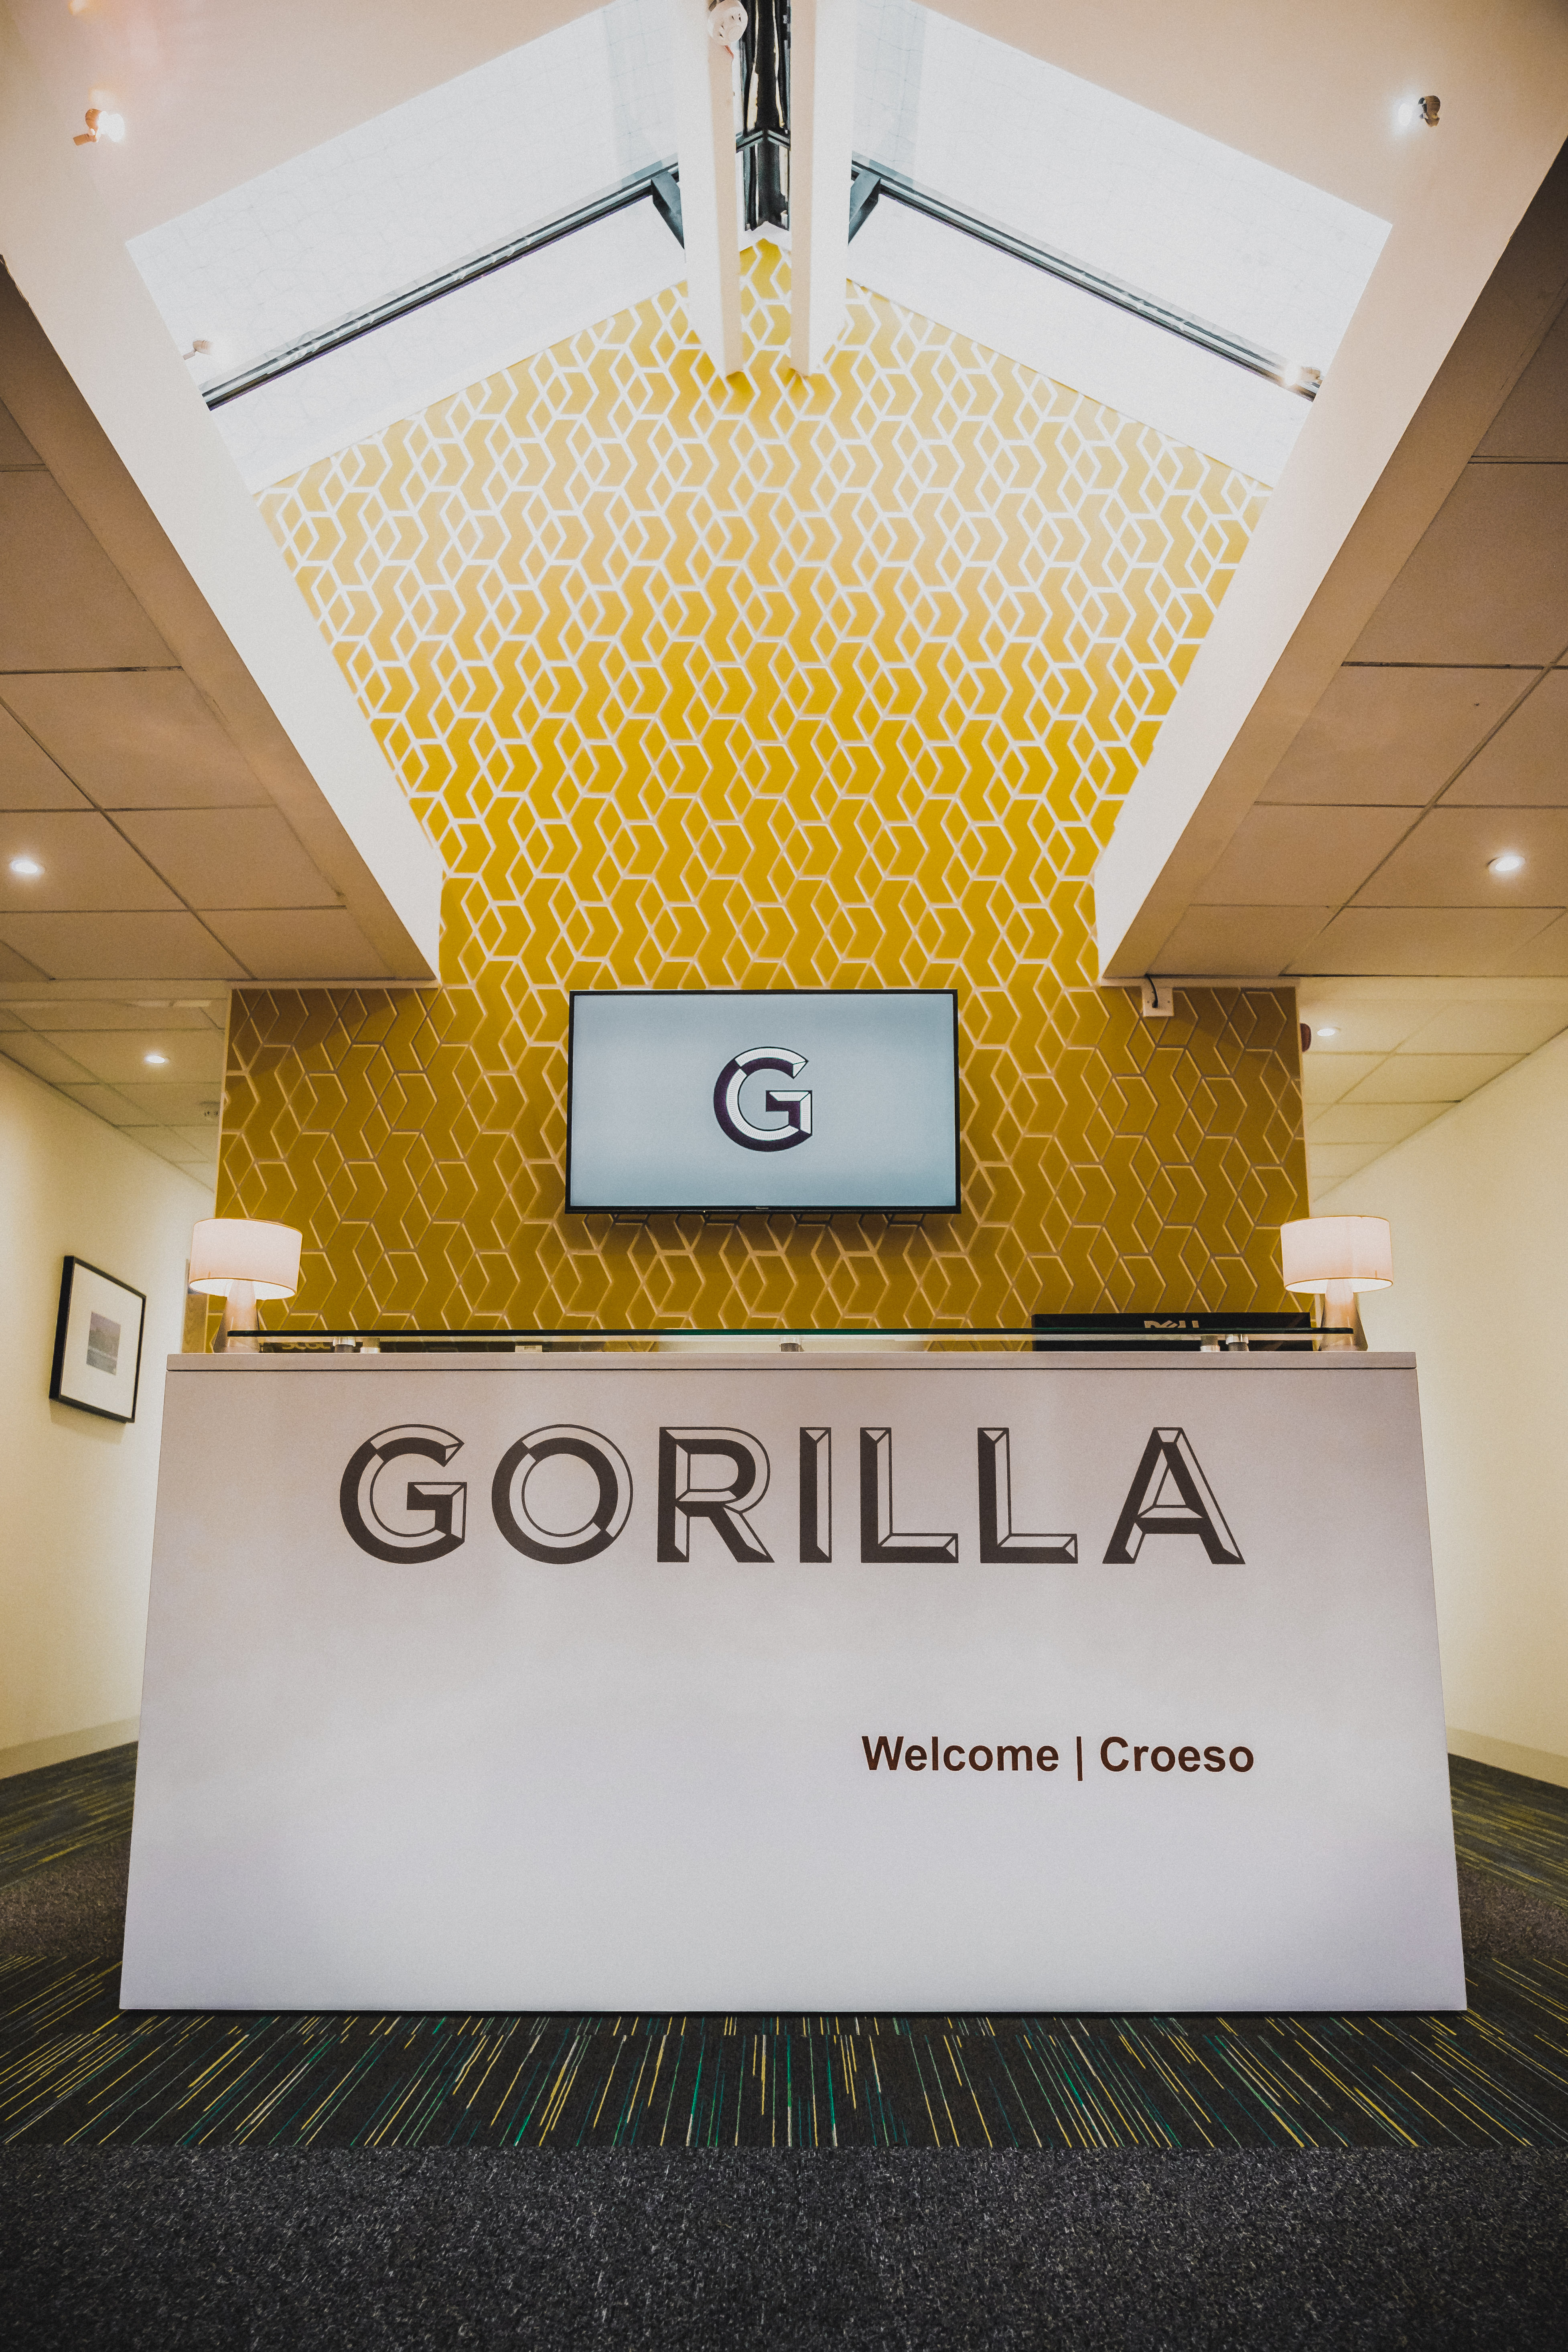 Gorilla cardiff expansion 2